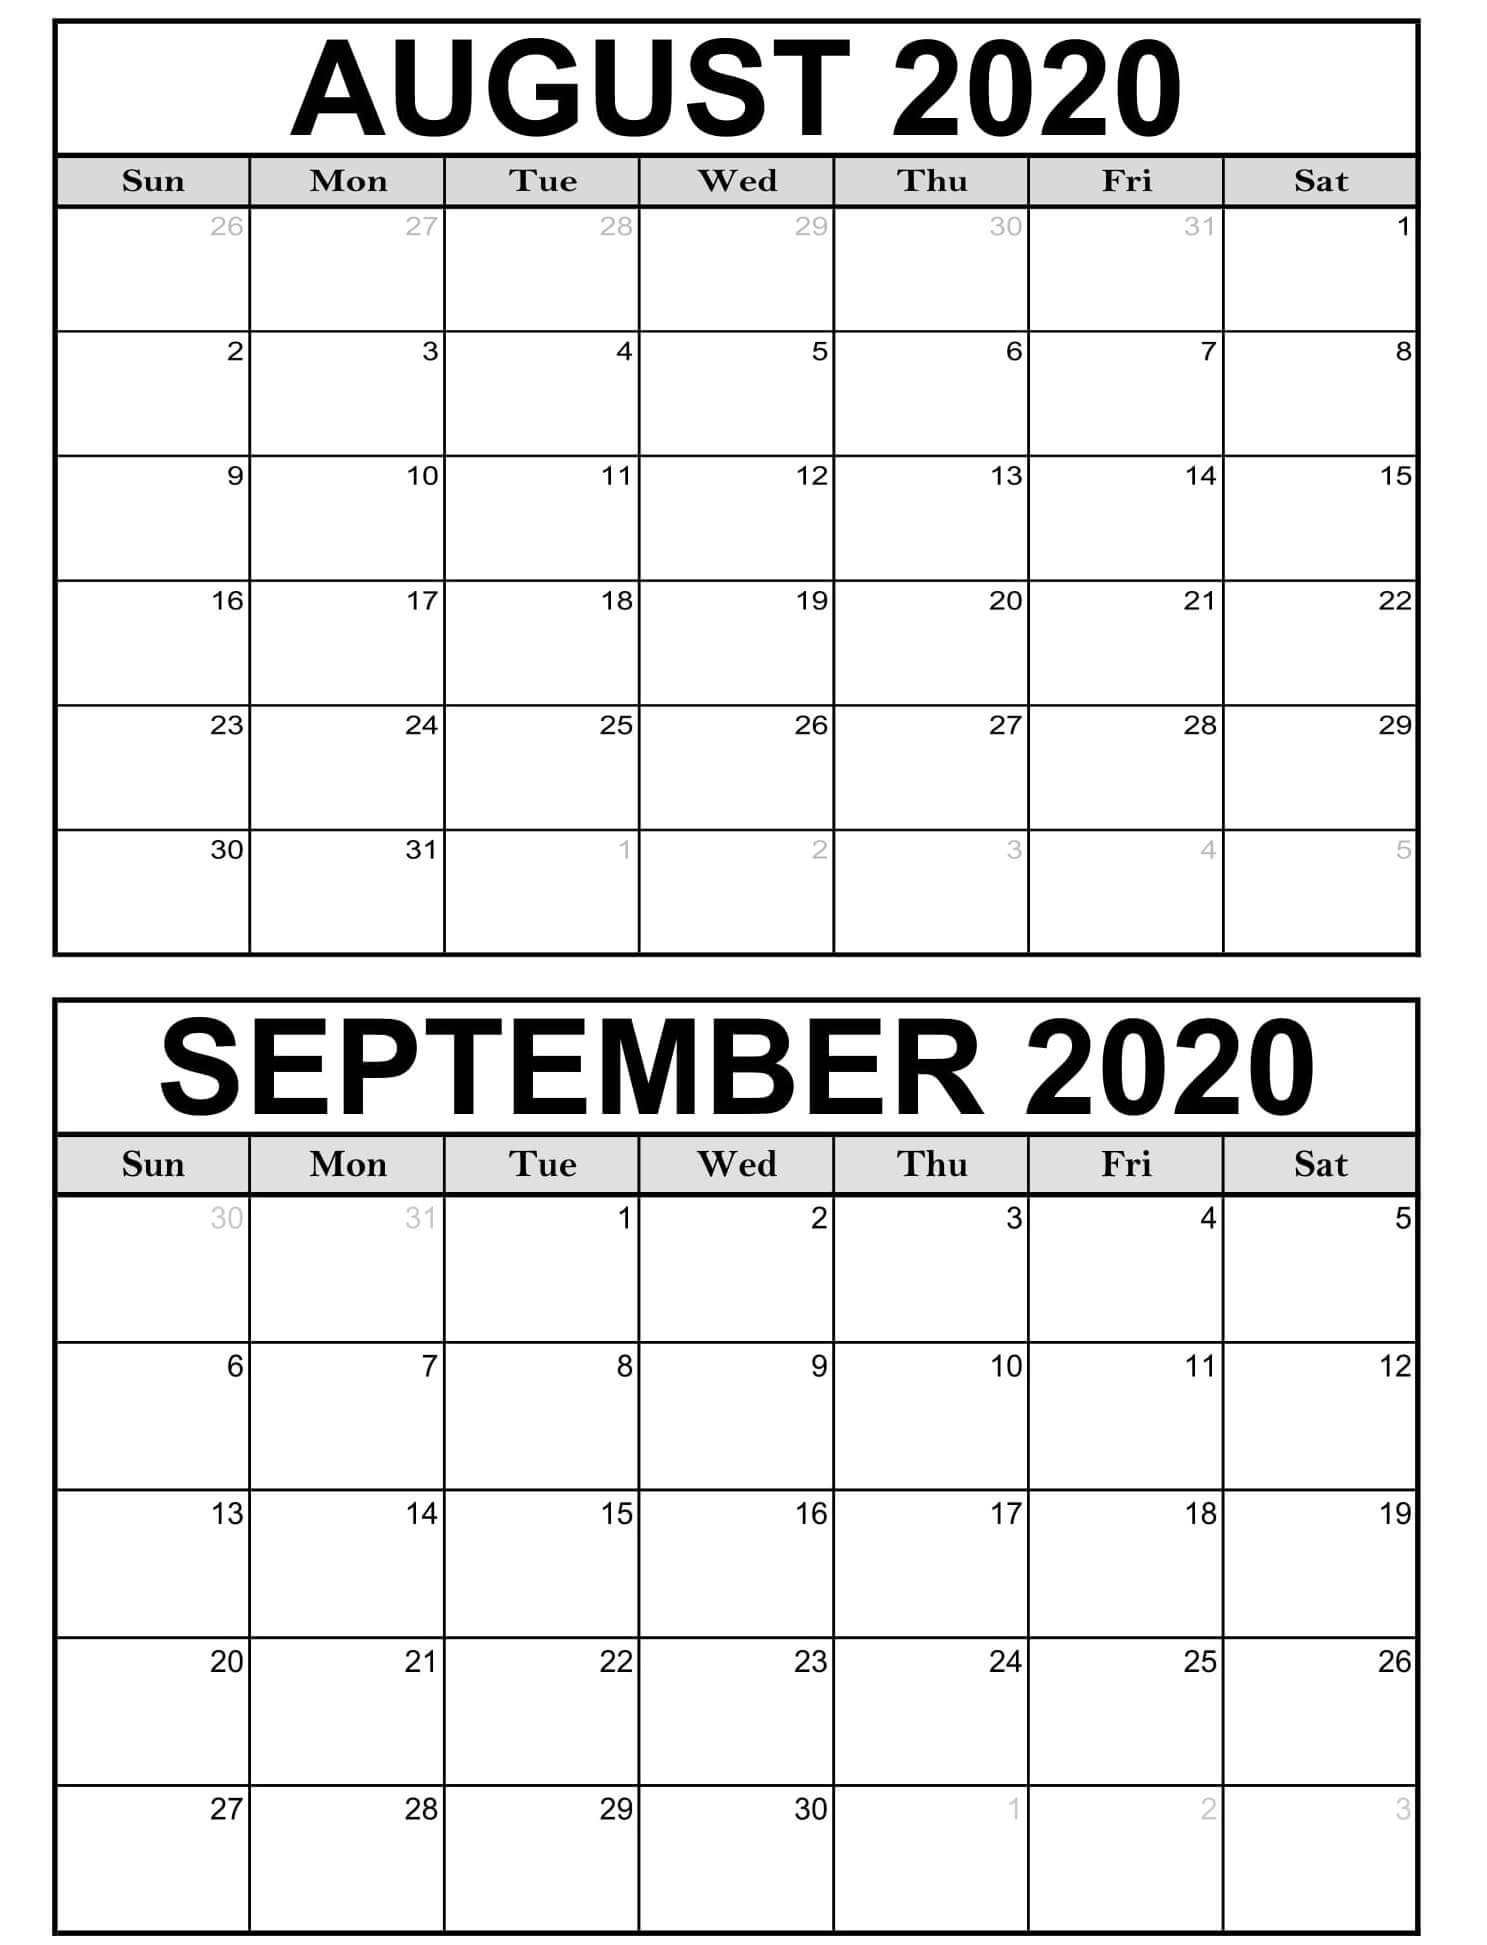 2020 August September Calendar With Holidays - 2019  Month Of August And September Calendar